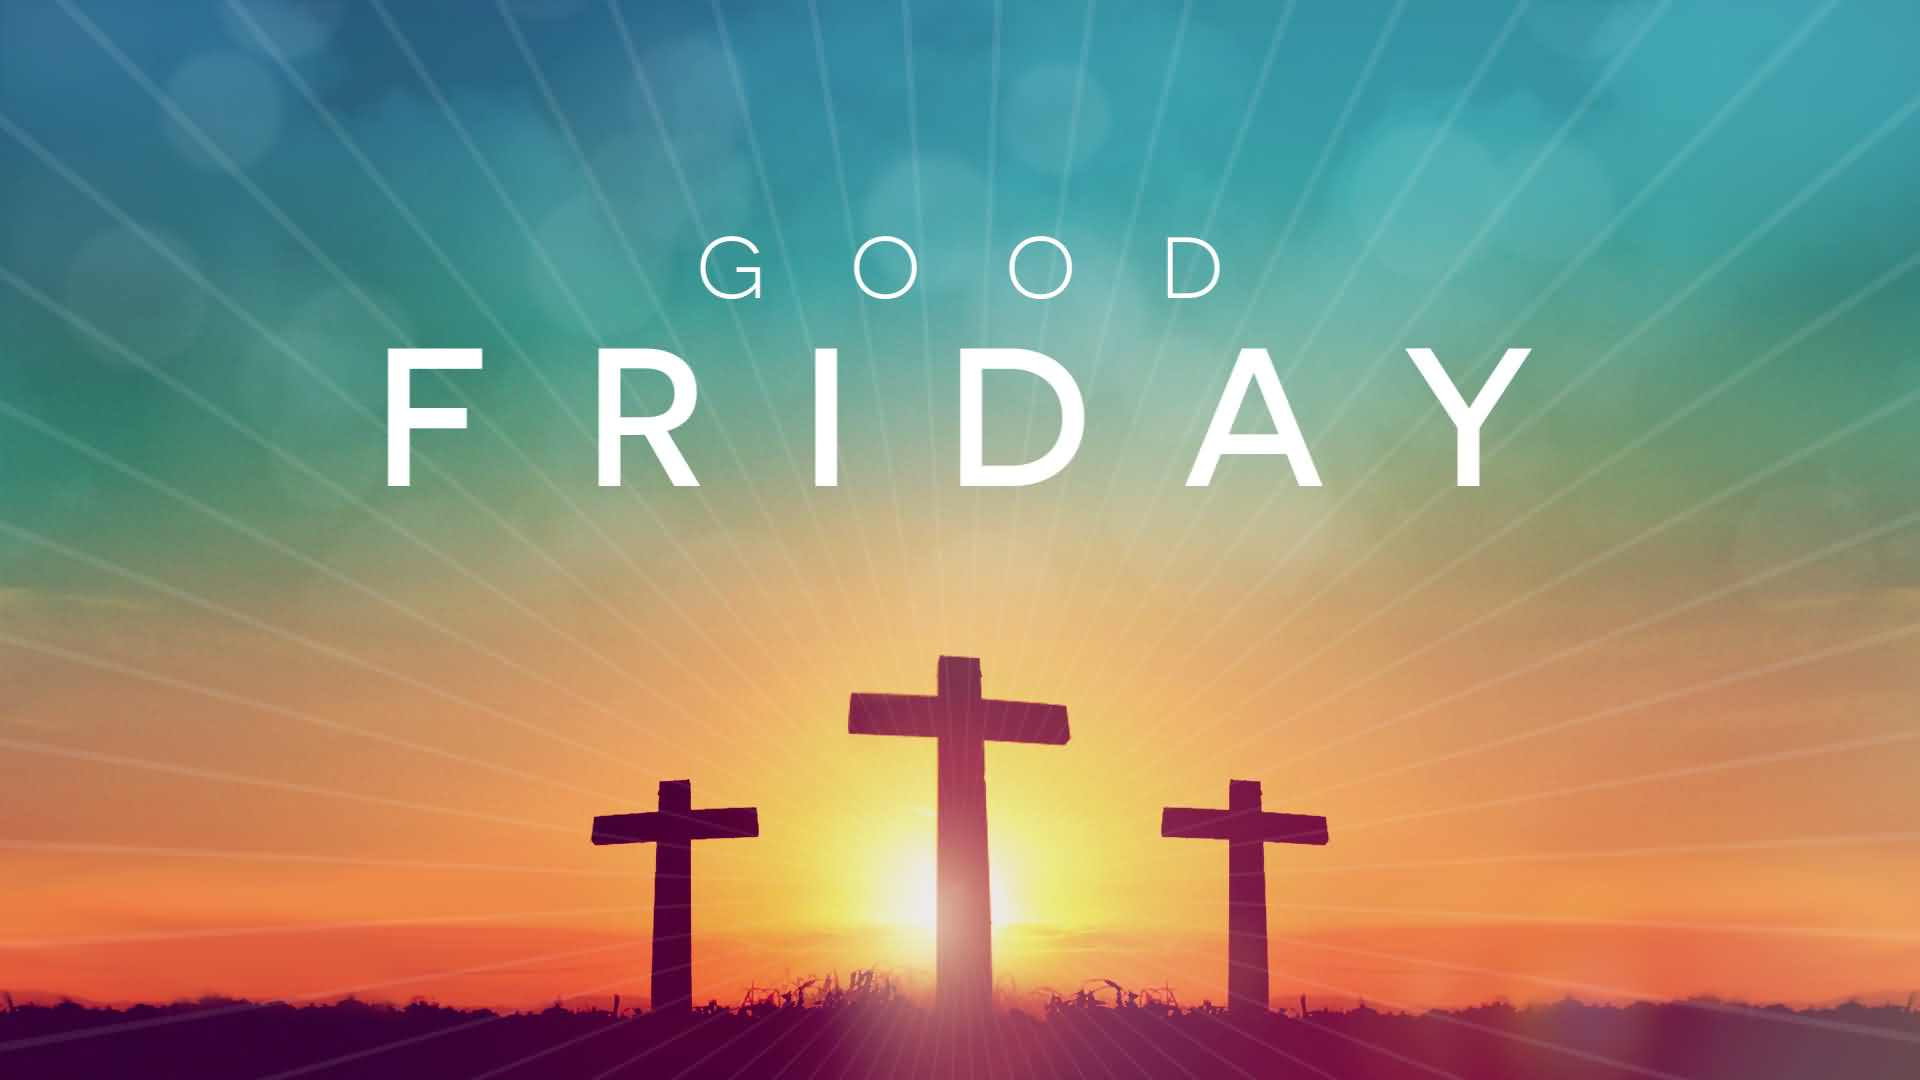 113-Good Friday Wishes